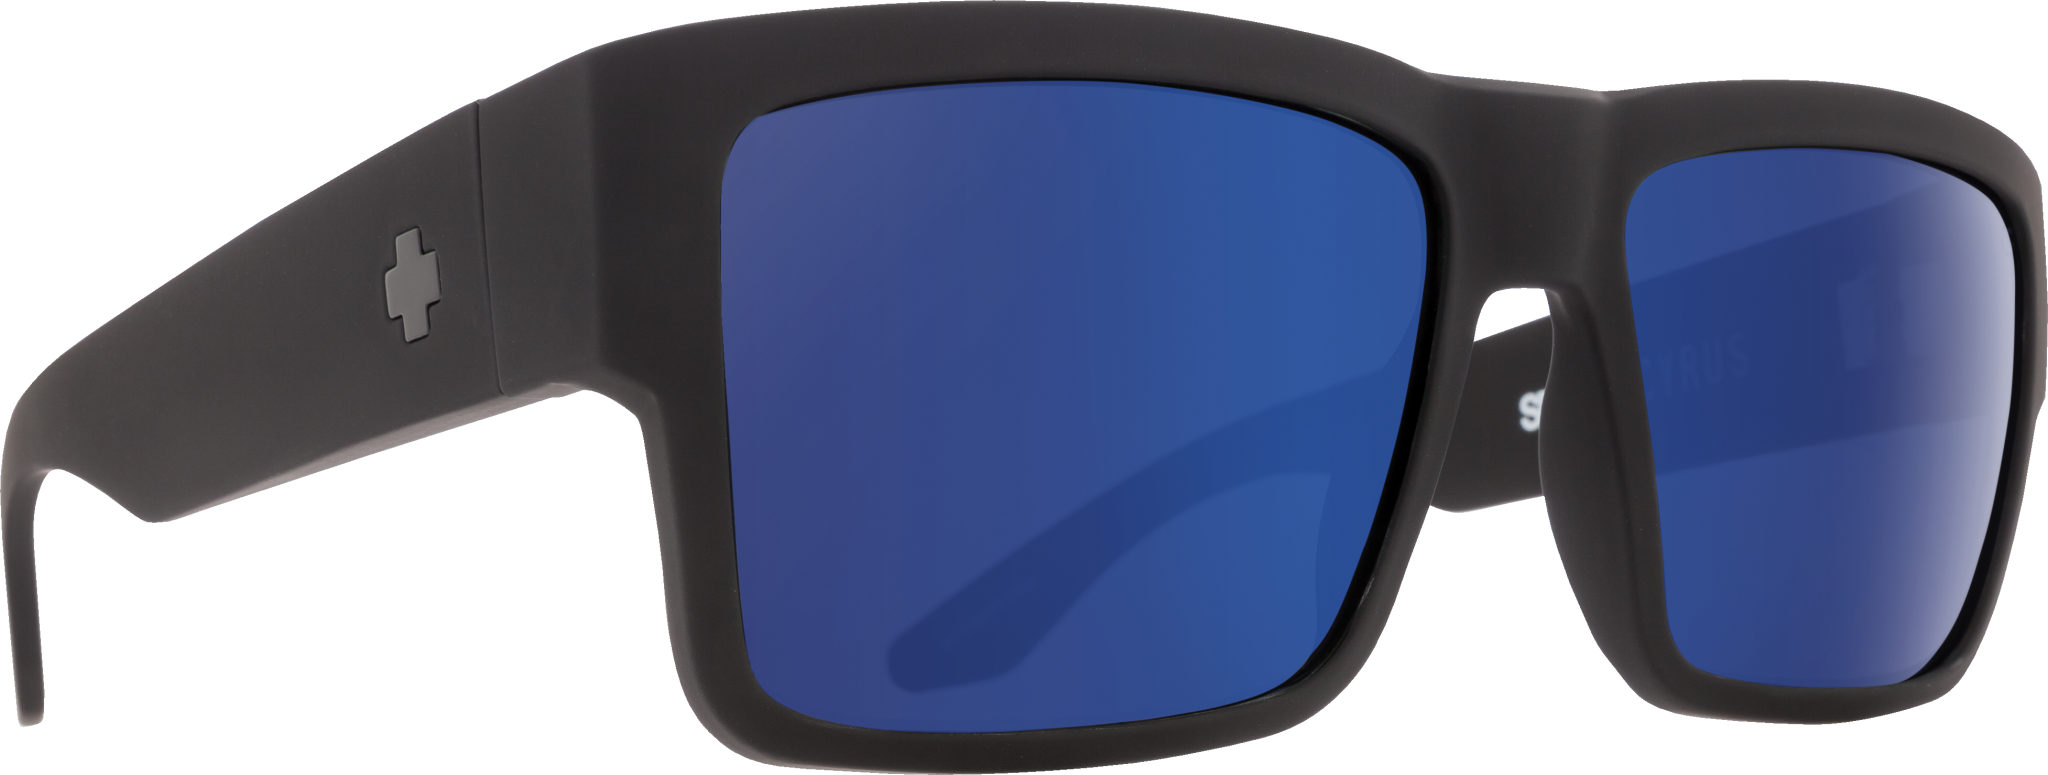 SPY Spy Cyrus Sunglasses